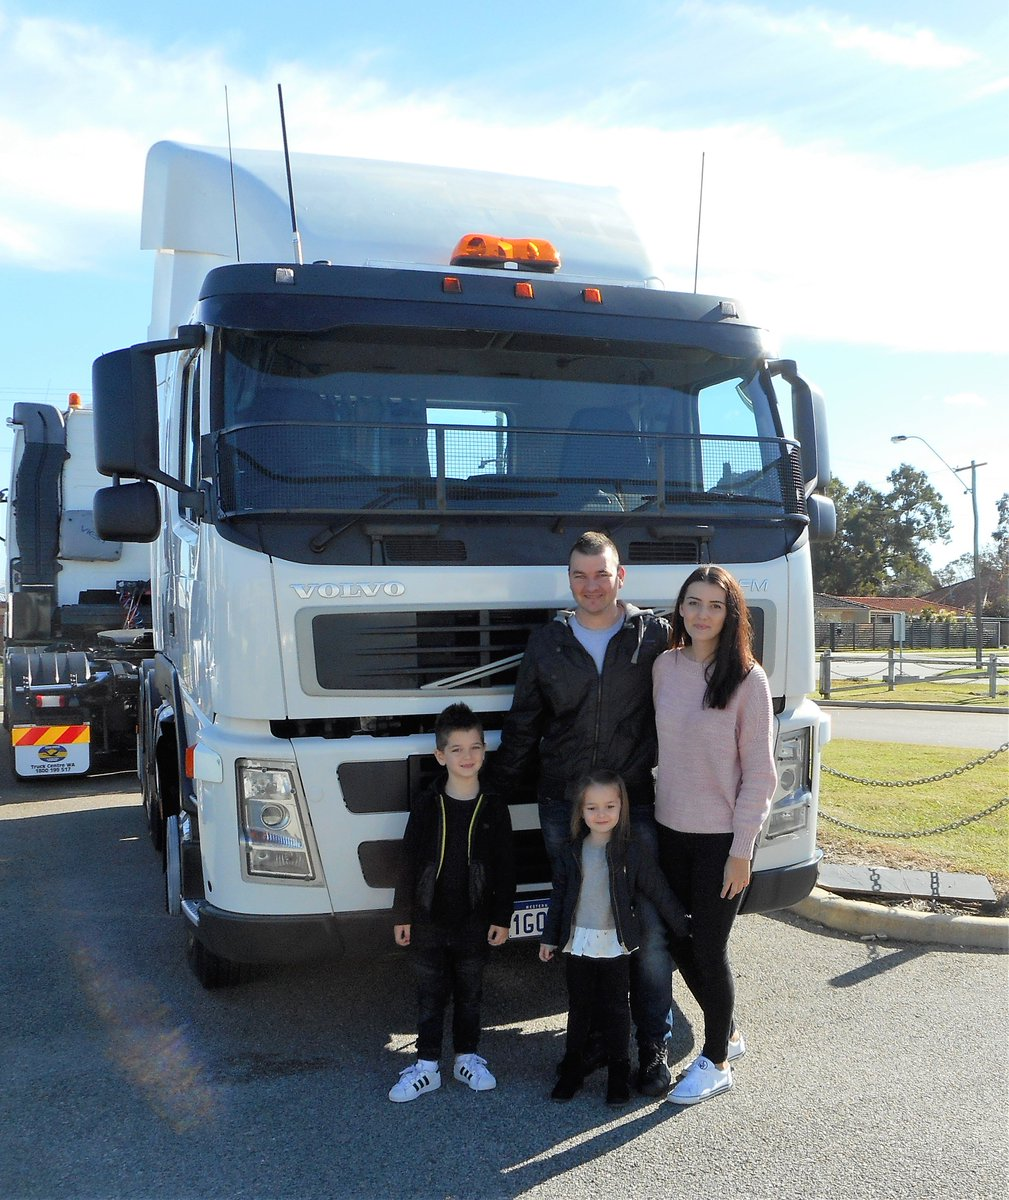 What truck model to purchase for transportation system of materials 35